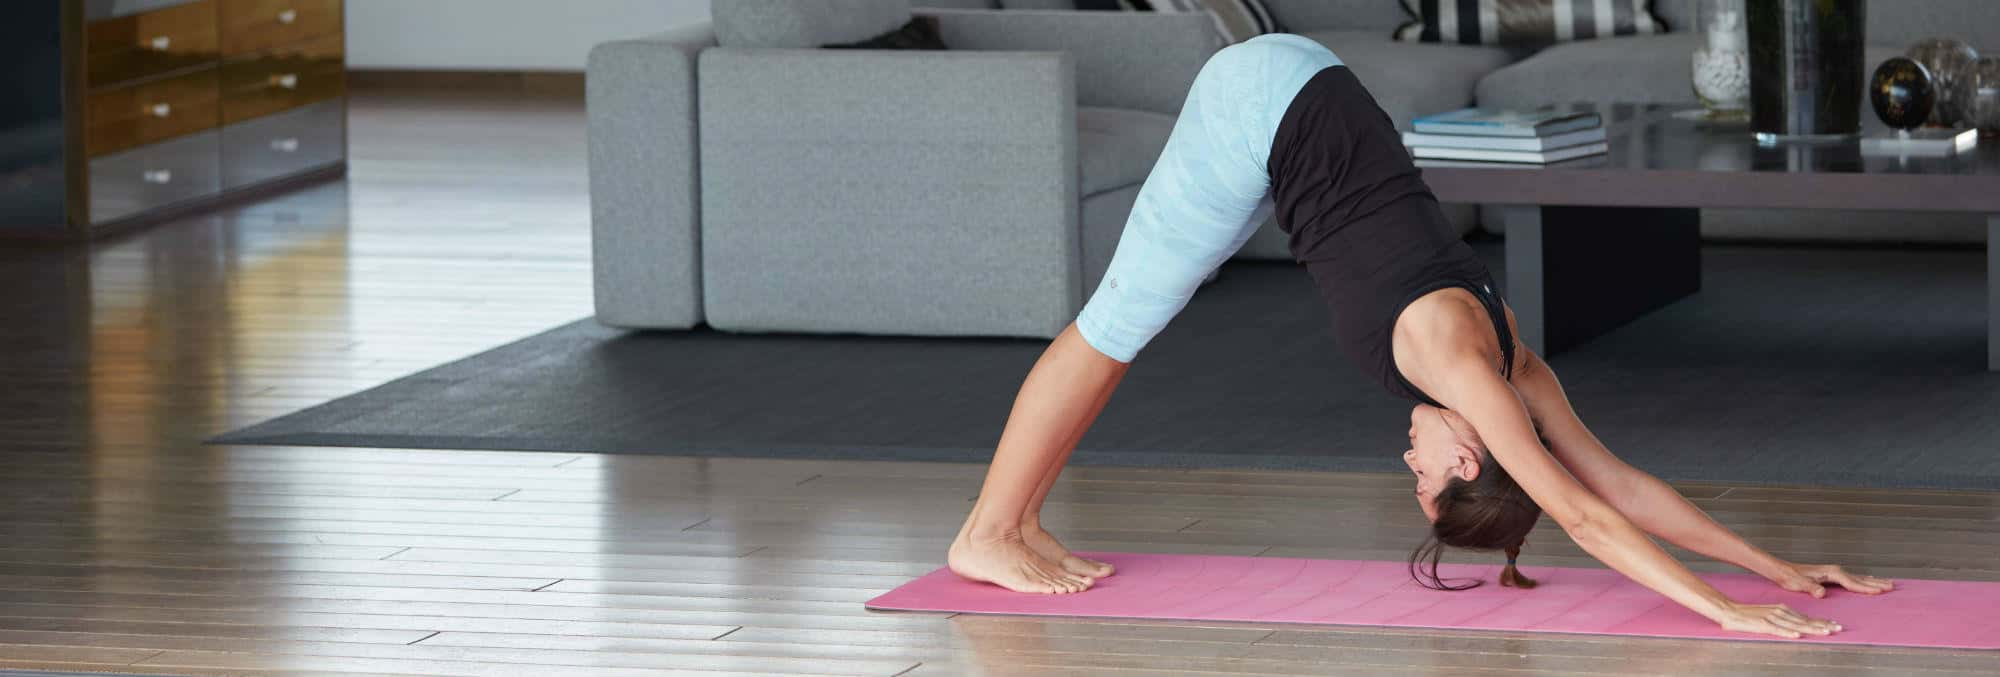 Learn the Art Of Downward Facing Yoga Poses and its Benefits